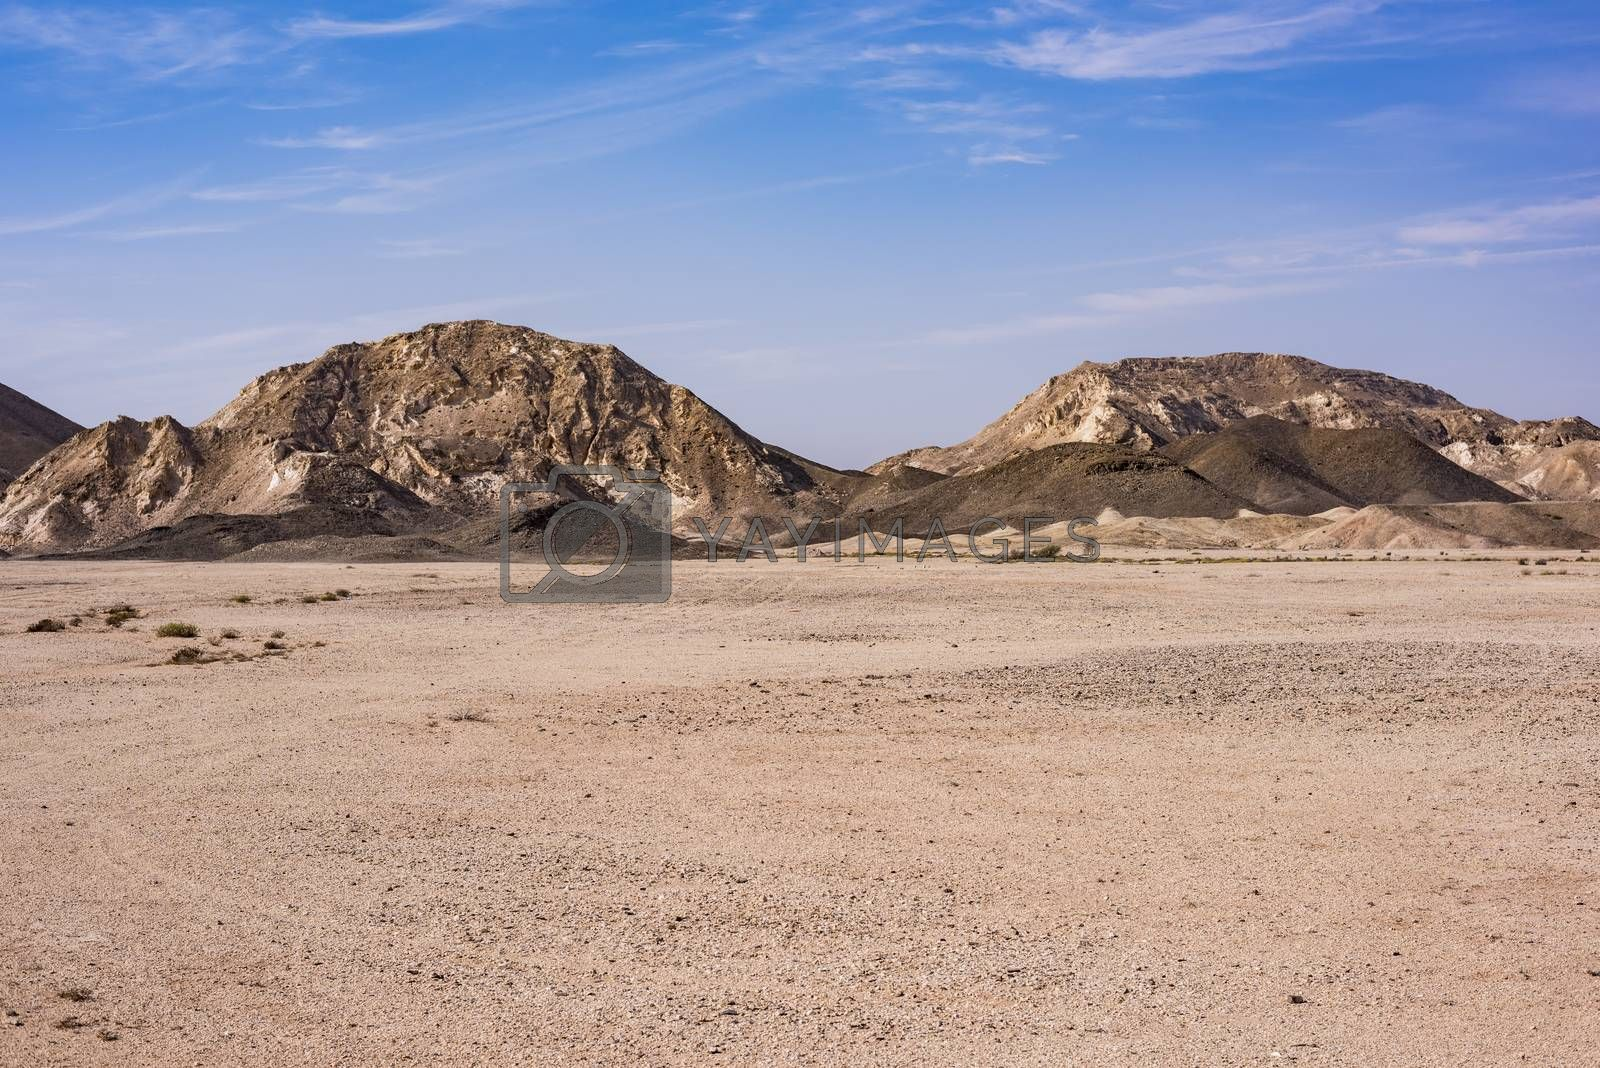 Panorama with the desert and mountains in Ras Al Jinz, Oman